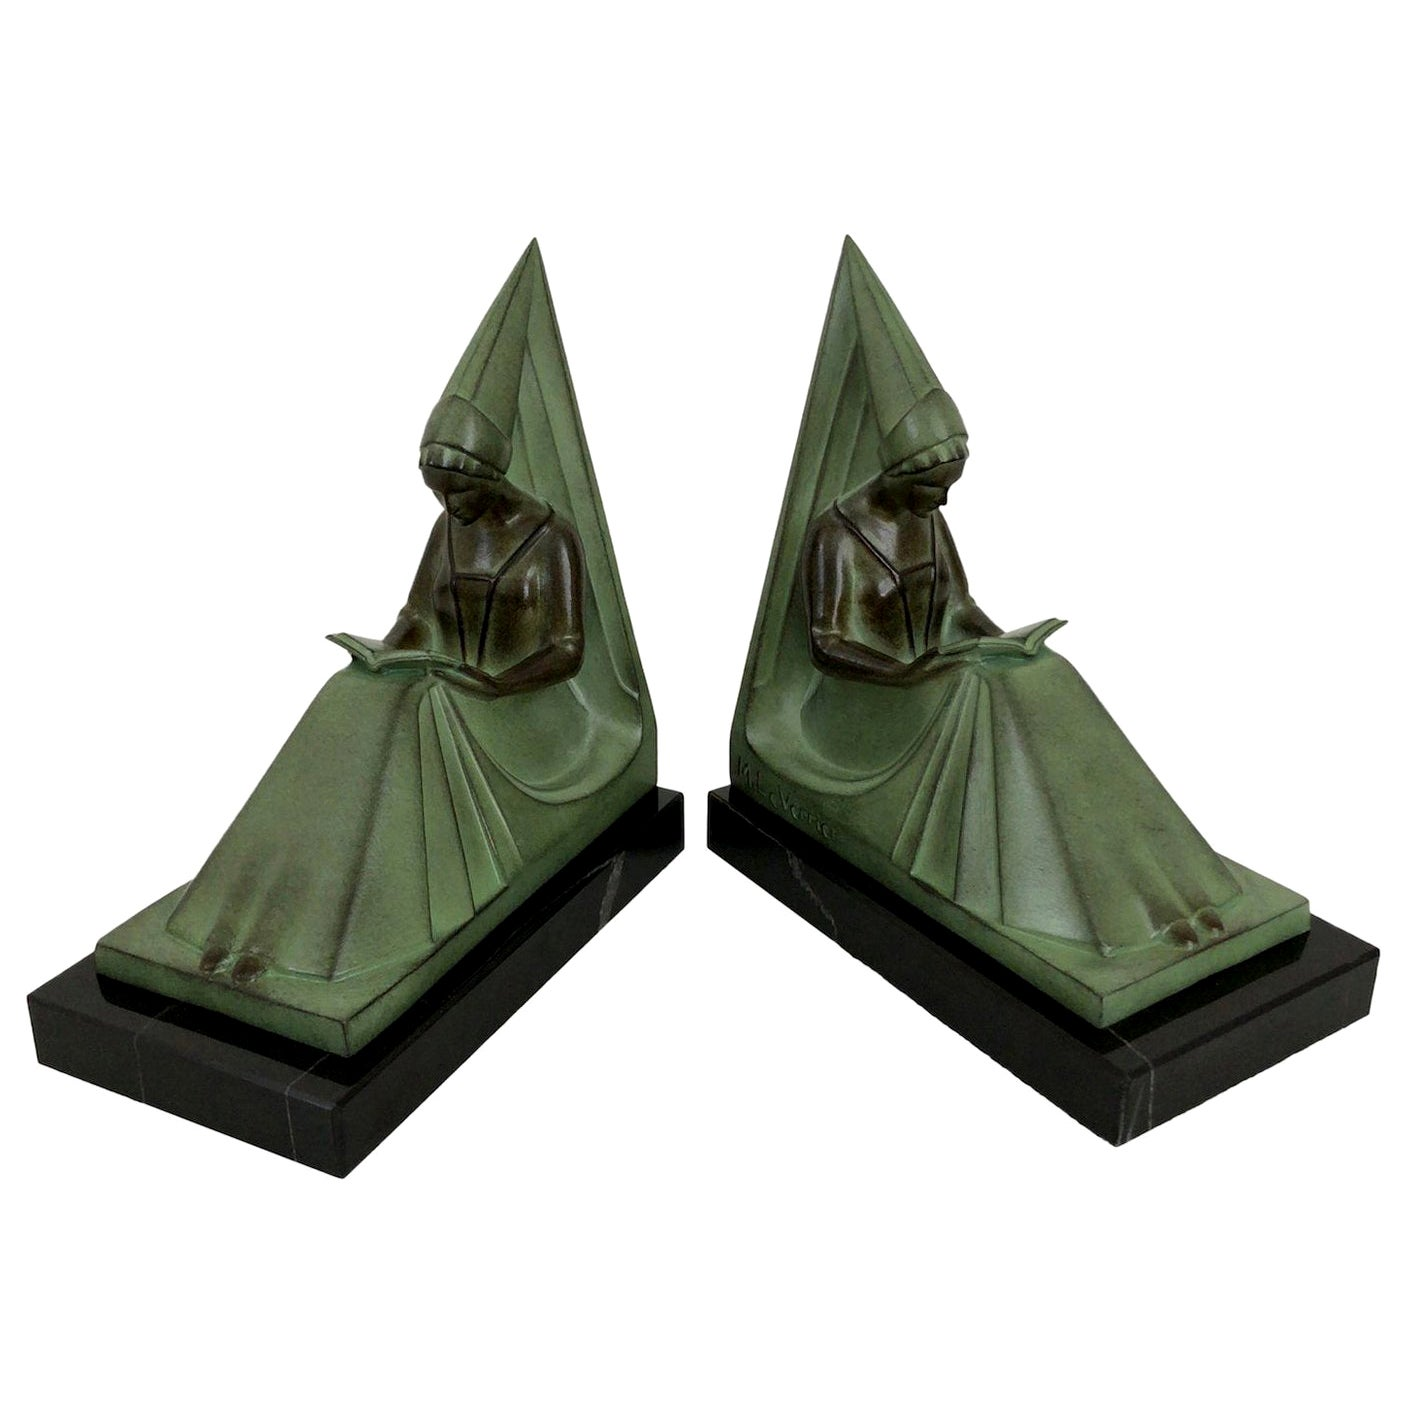 Moyen Age Original Max Le Verrier Art Deco Style Bookends